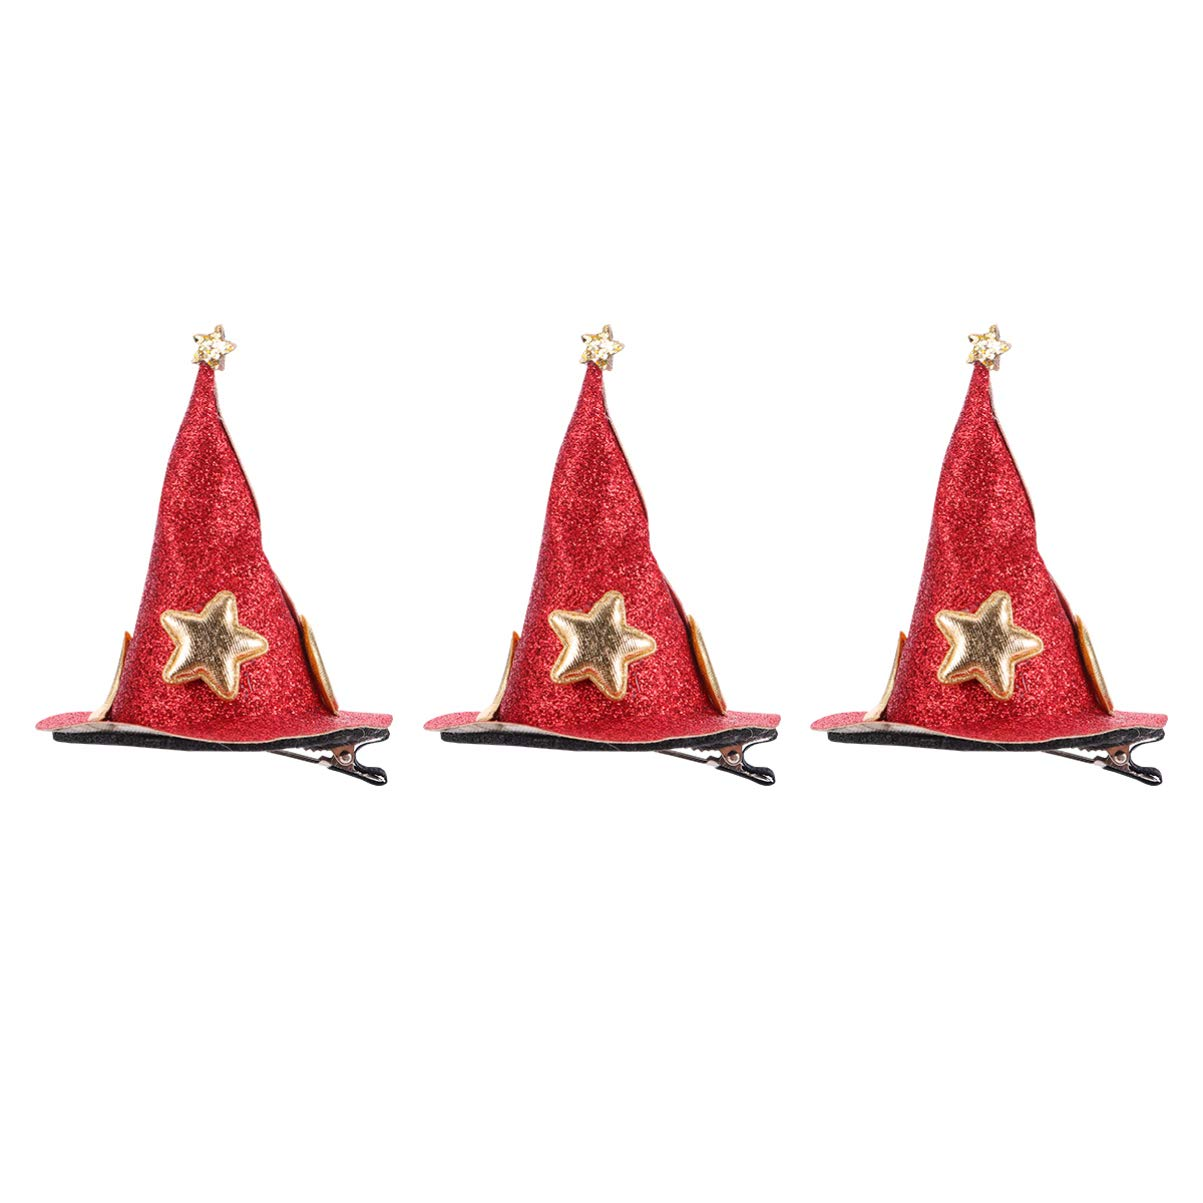 KESYOO Halloween Mini Witch Hats Hair Clip Shining Star Moon pattern Hairpins Barrettes for Halloween Party Headdress Dress Up 3Pcs (Red)